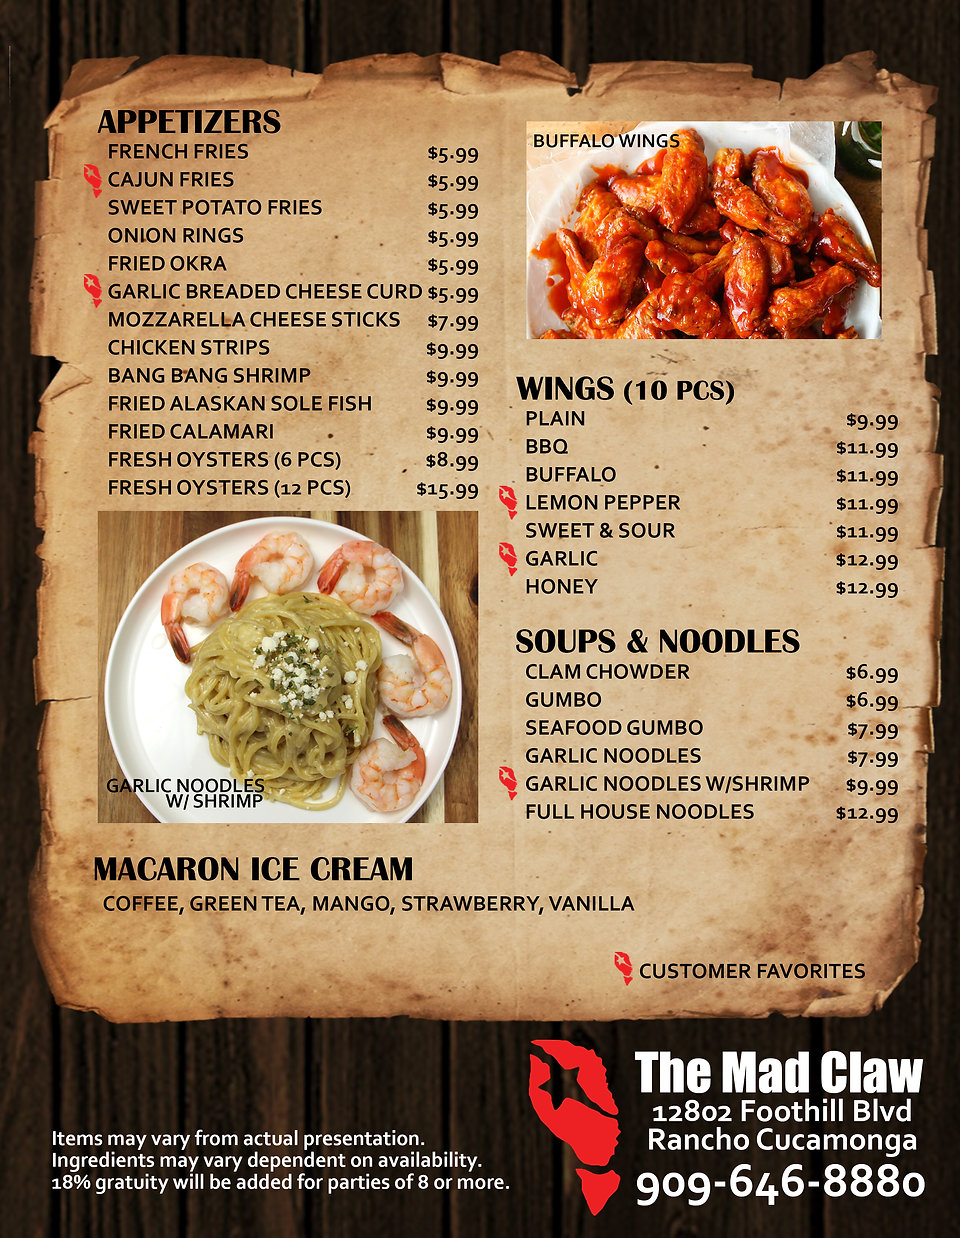 THE MAD CLAW MENU BACK PRINT 07 24 20.jp